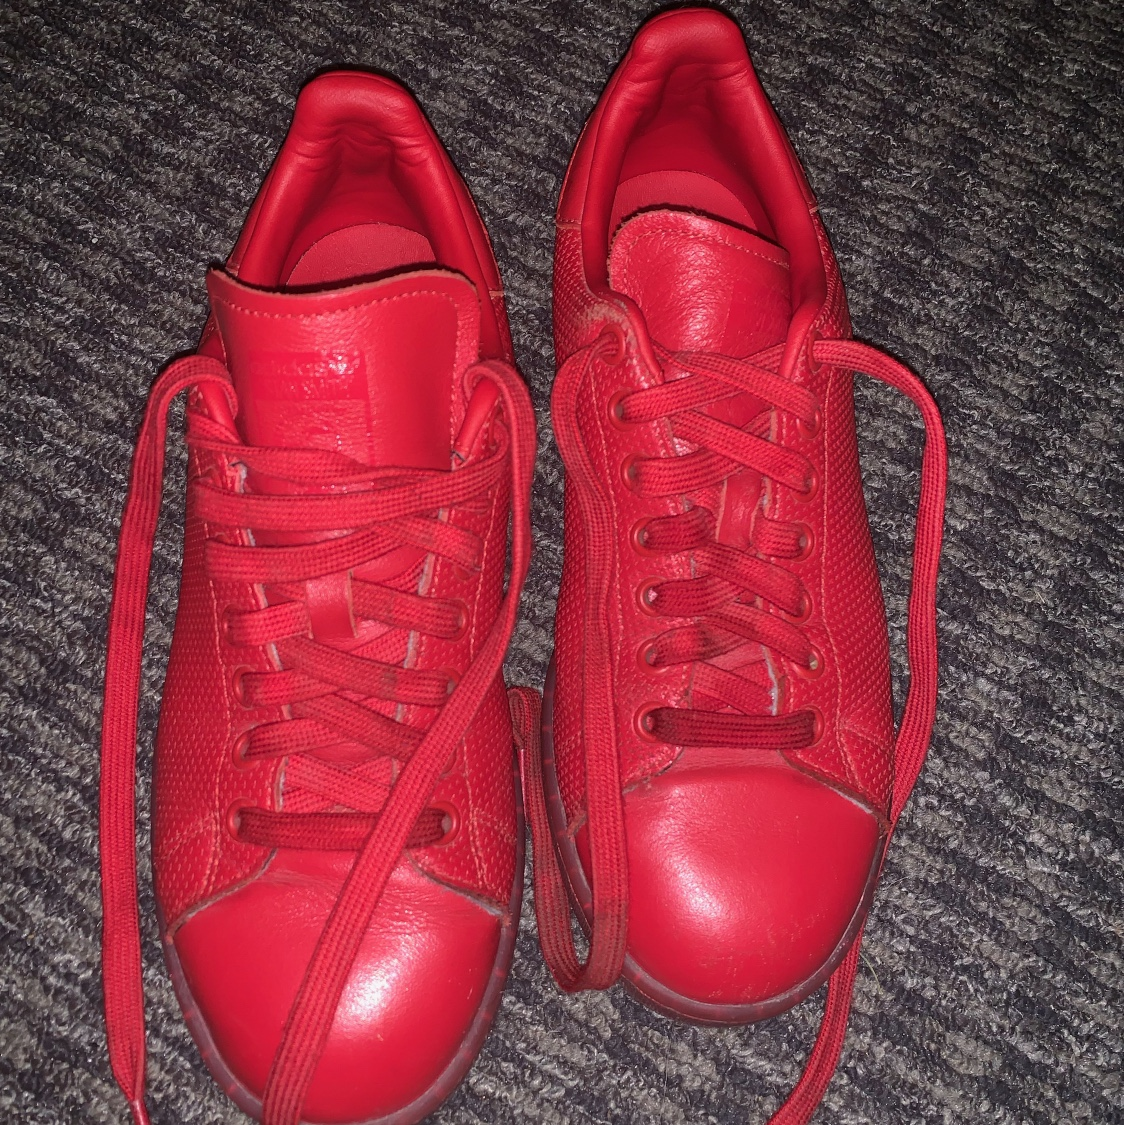 All red shell toe Adidas Men's 6.5